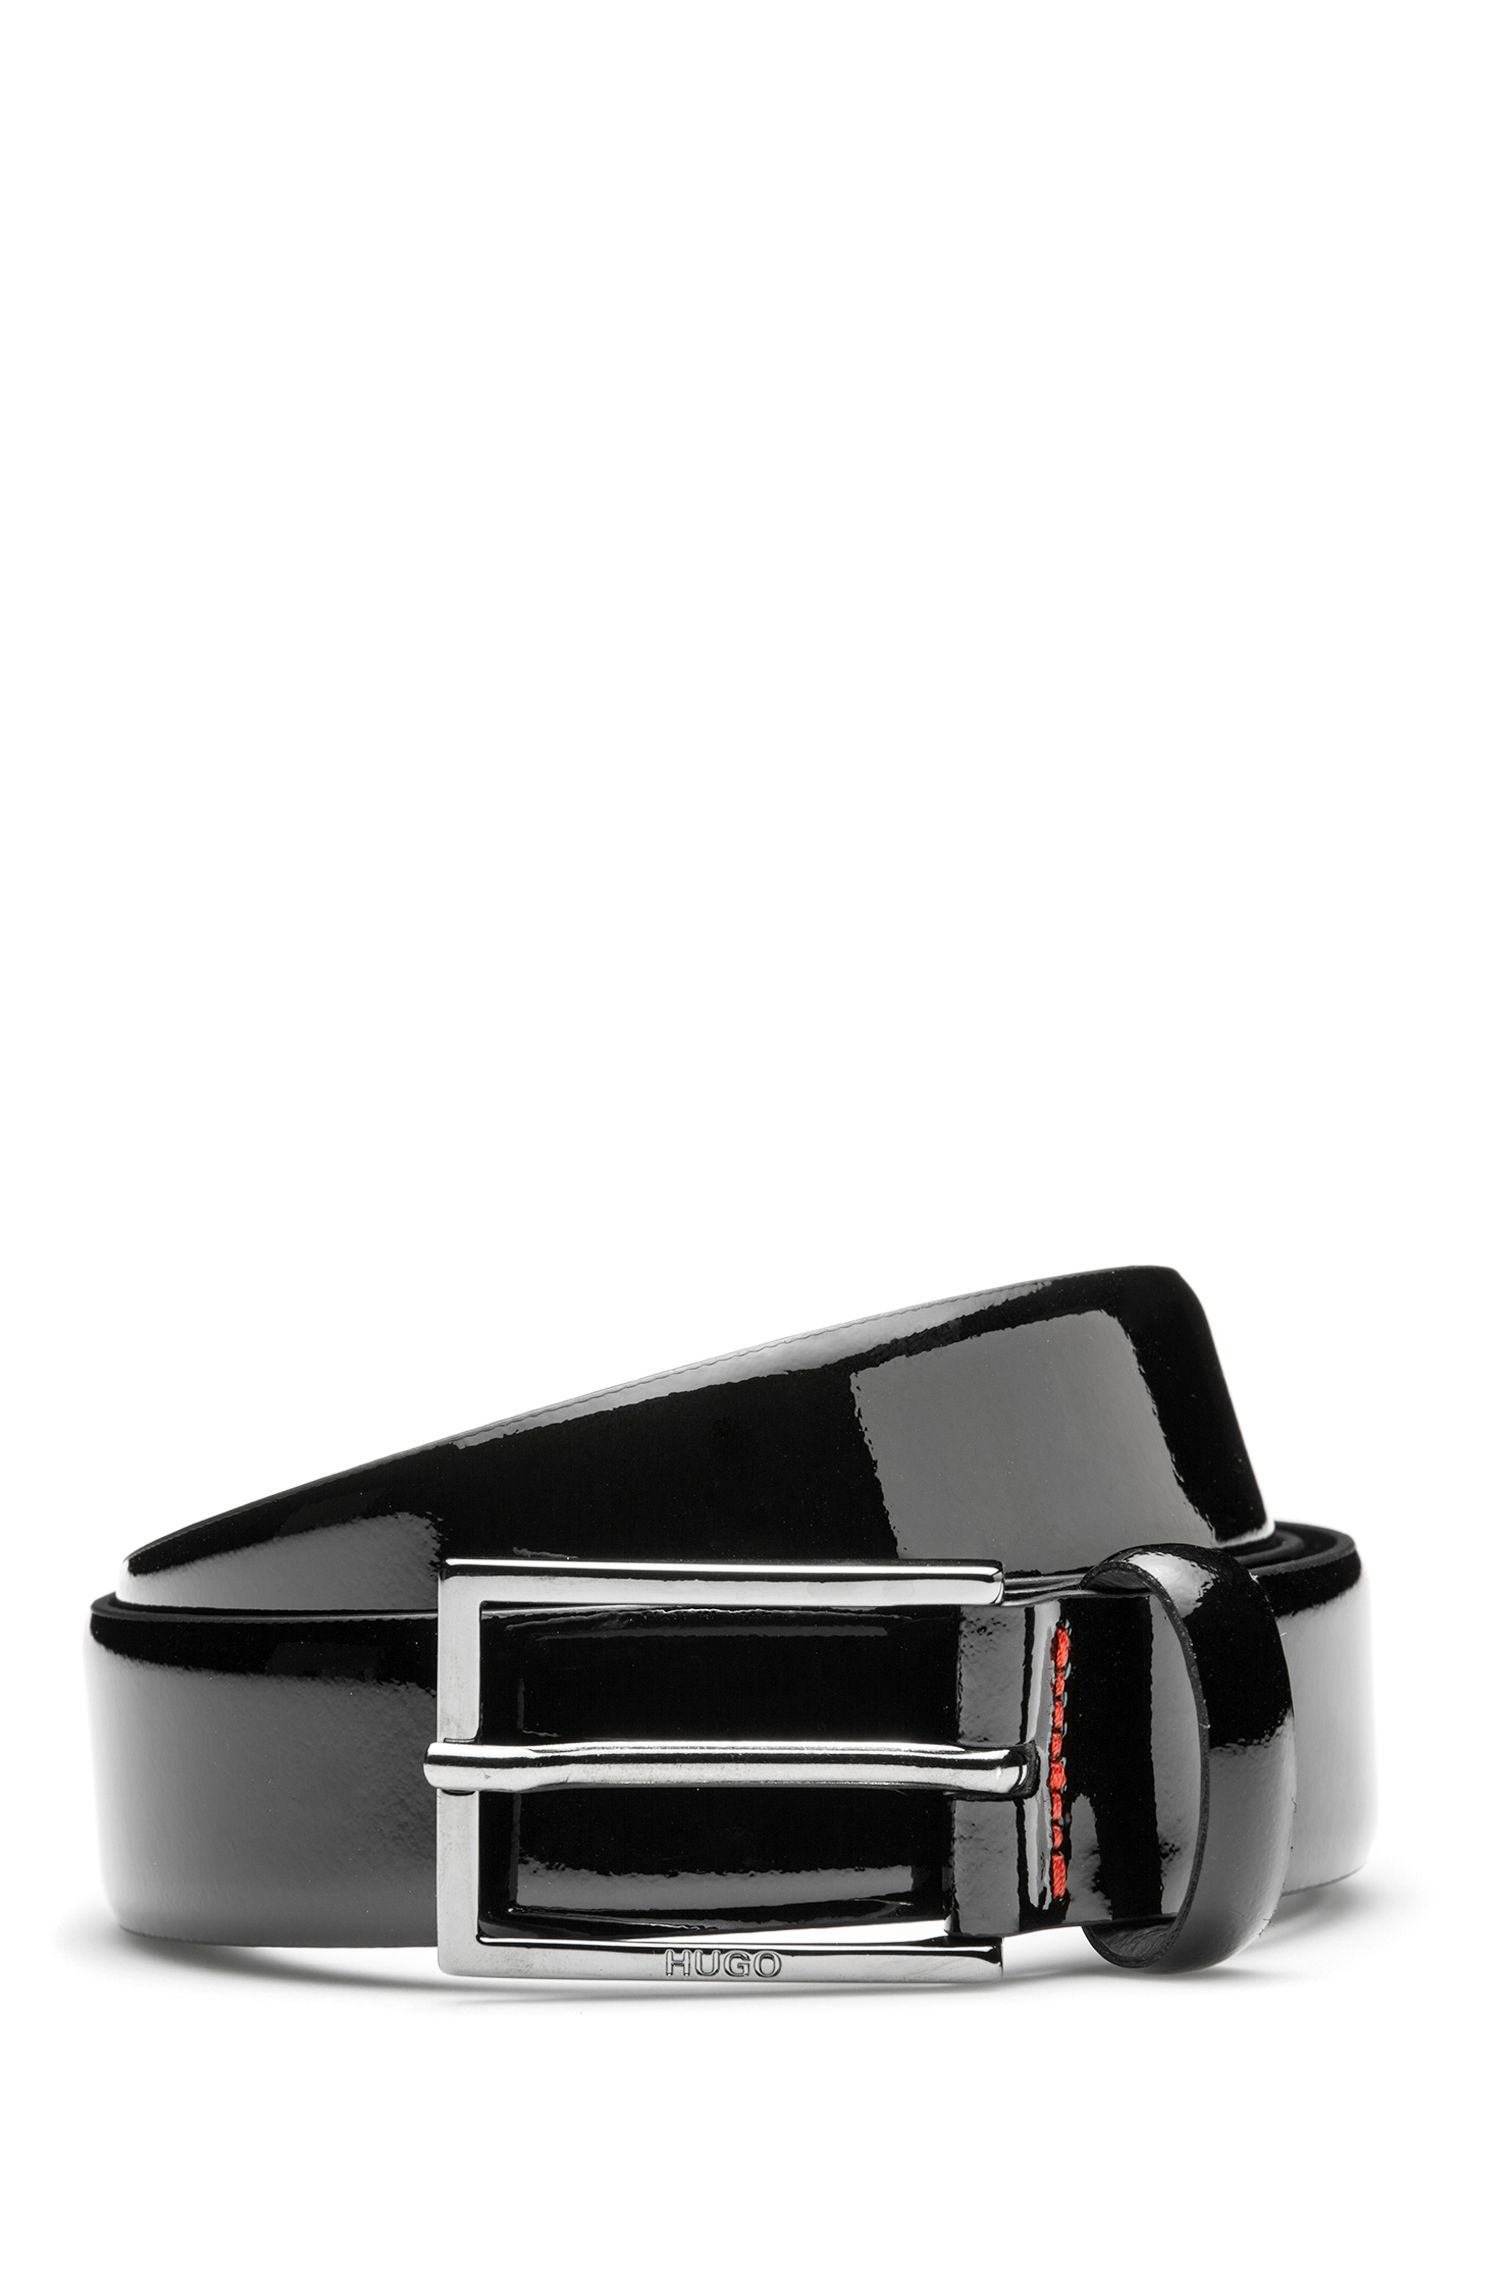 Patent-leather belt with two-tone effect